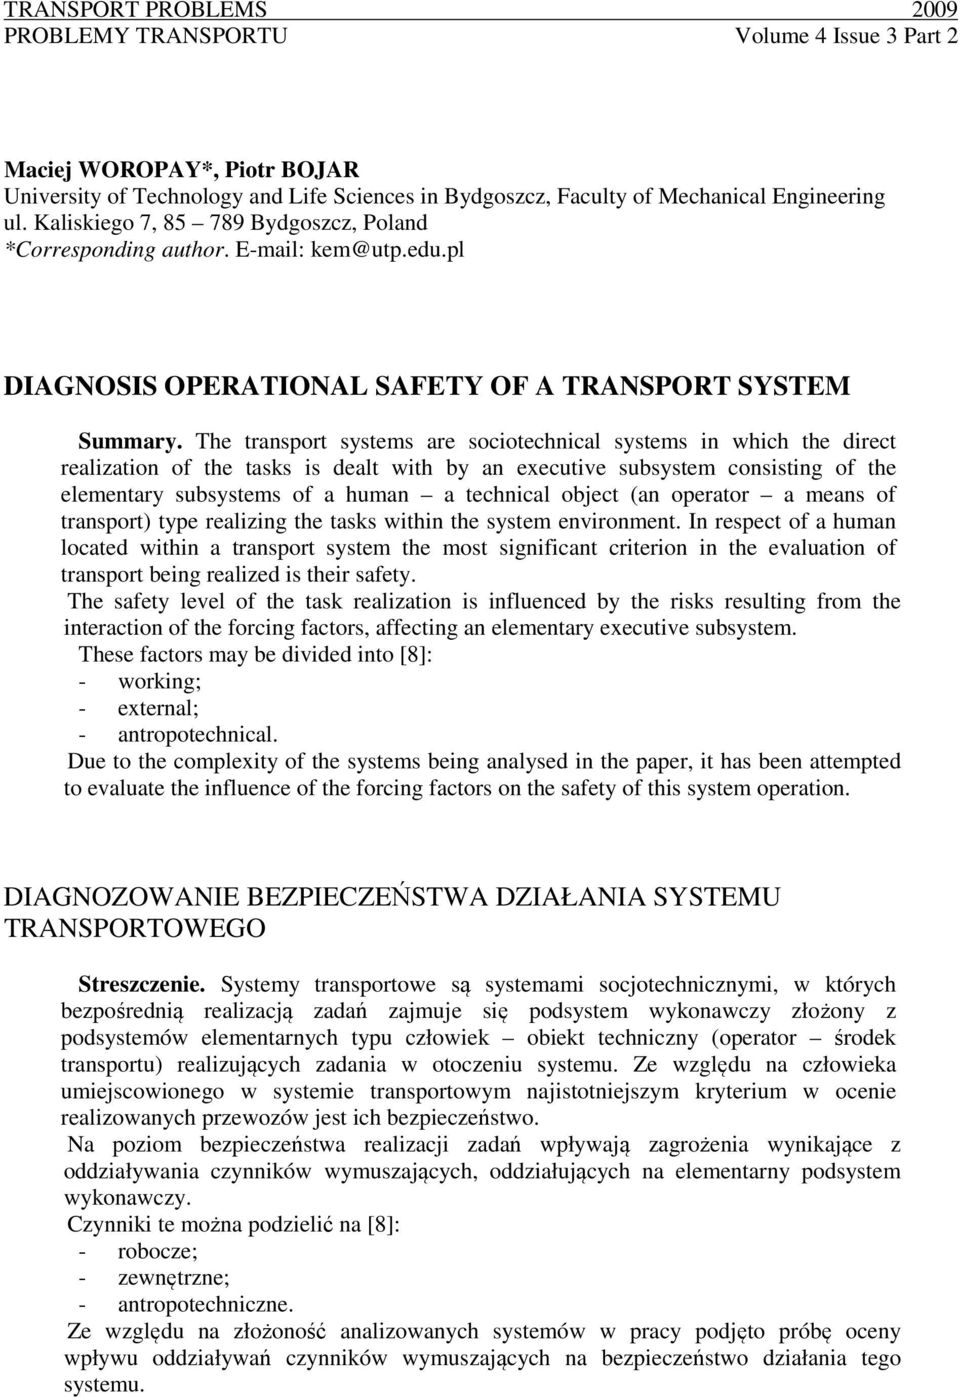 The transport systems are sociotechnical systems in which the direct realization of the tasks is dealt with by an executive subsystem consisting of the elementary subsystems of a human a technical